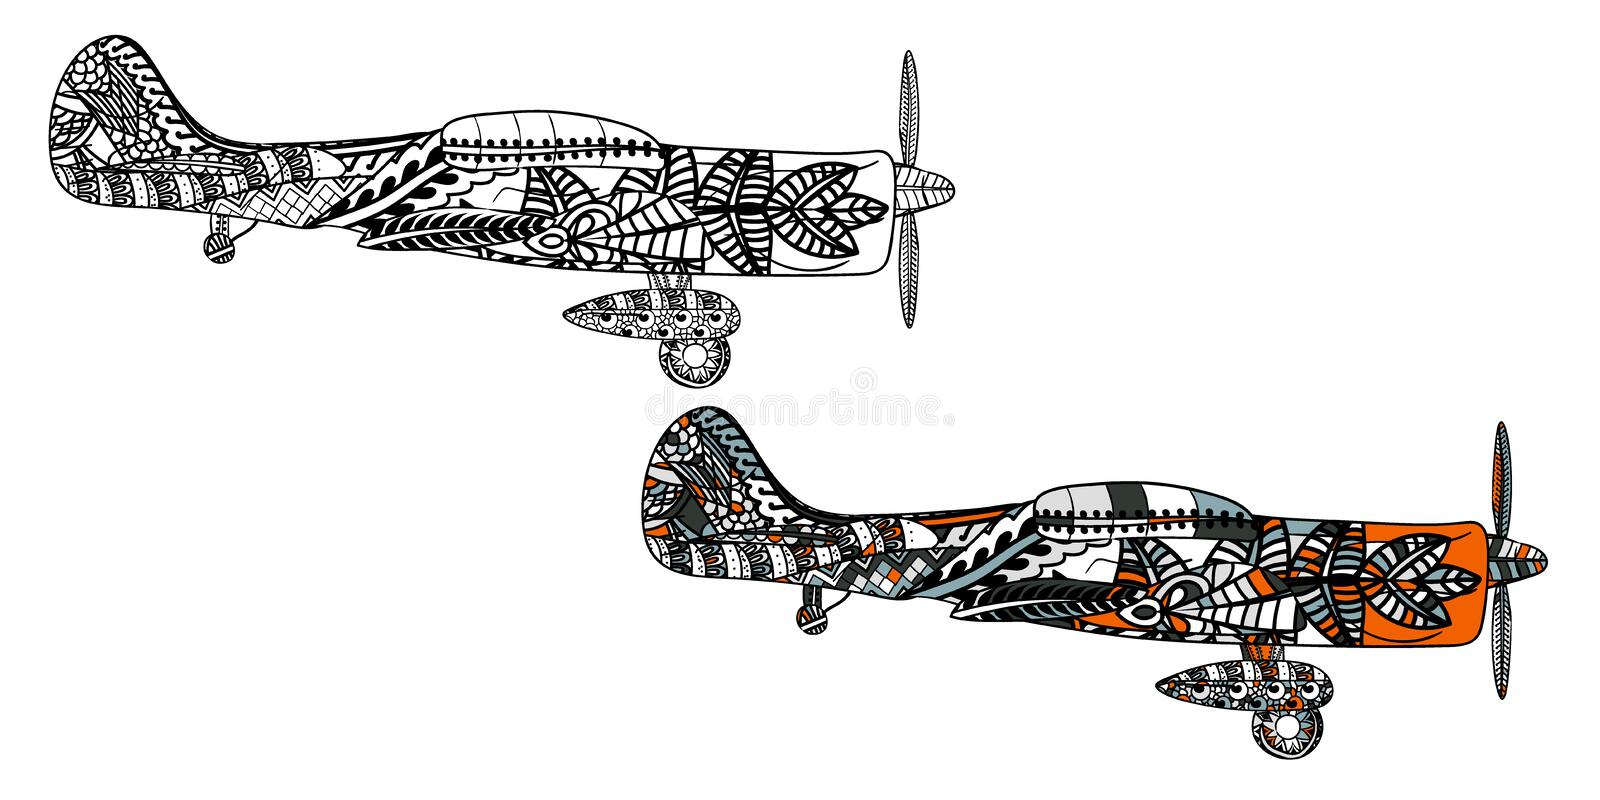 Airplane with ethnic doodle pattern. Zentangle inspired pattern for anti stress coloring book pages for adults and kids. Black on white and colored in one royalty free illustration